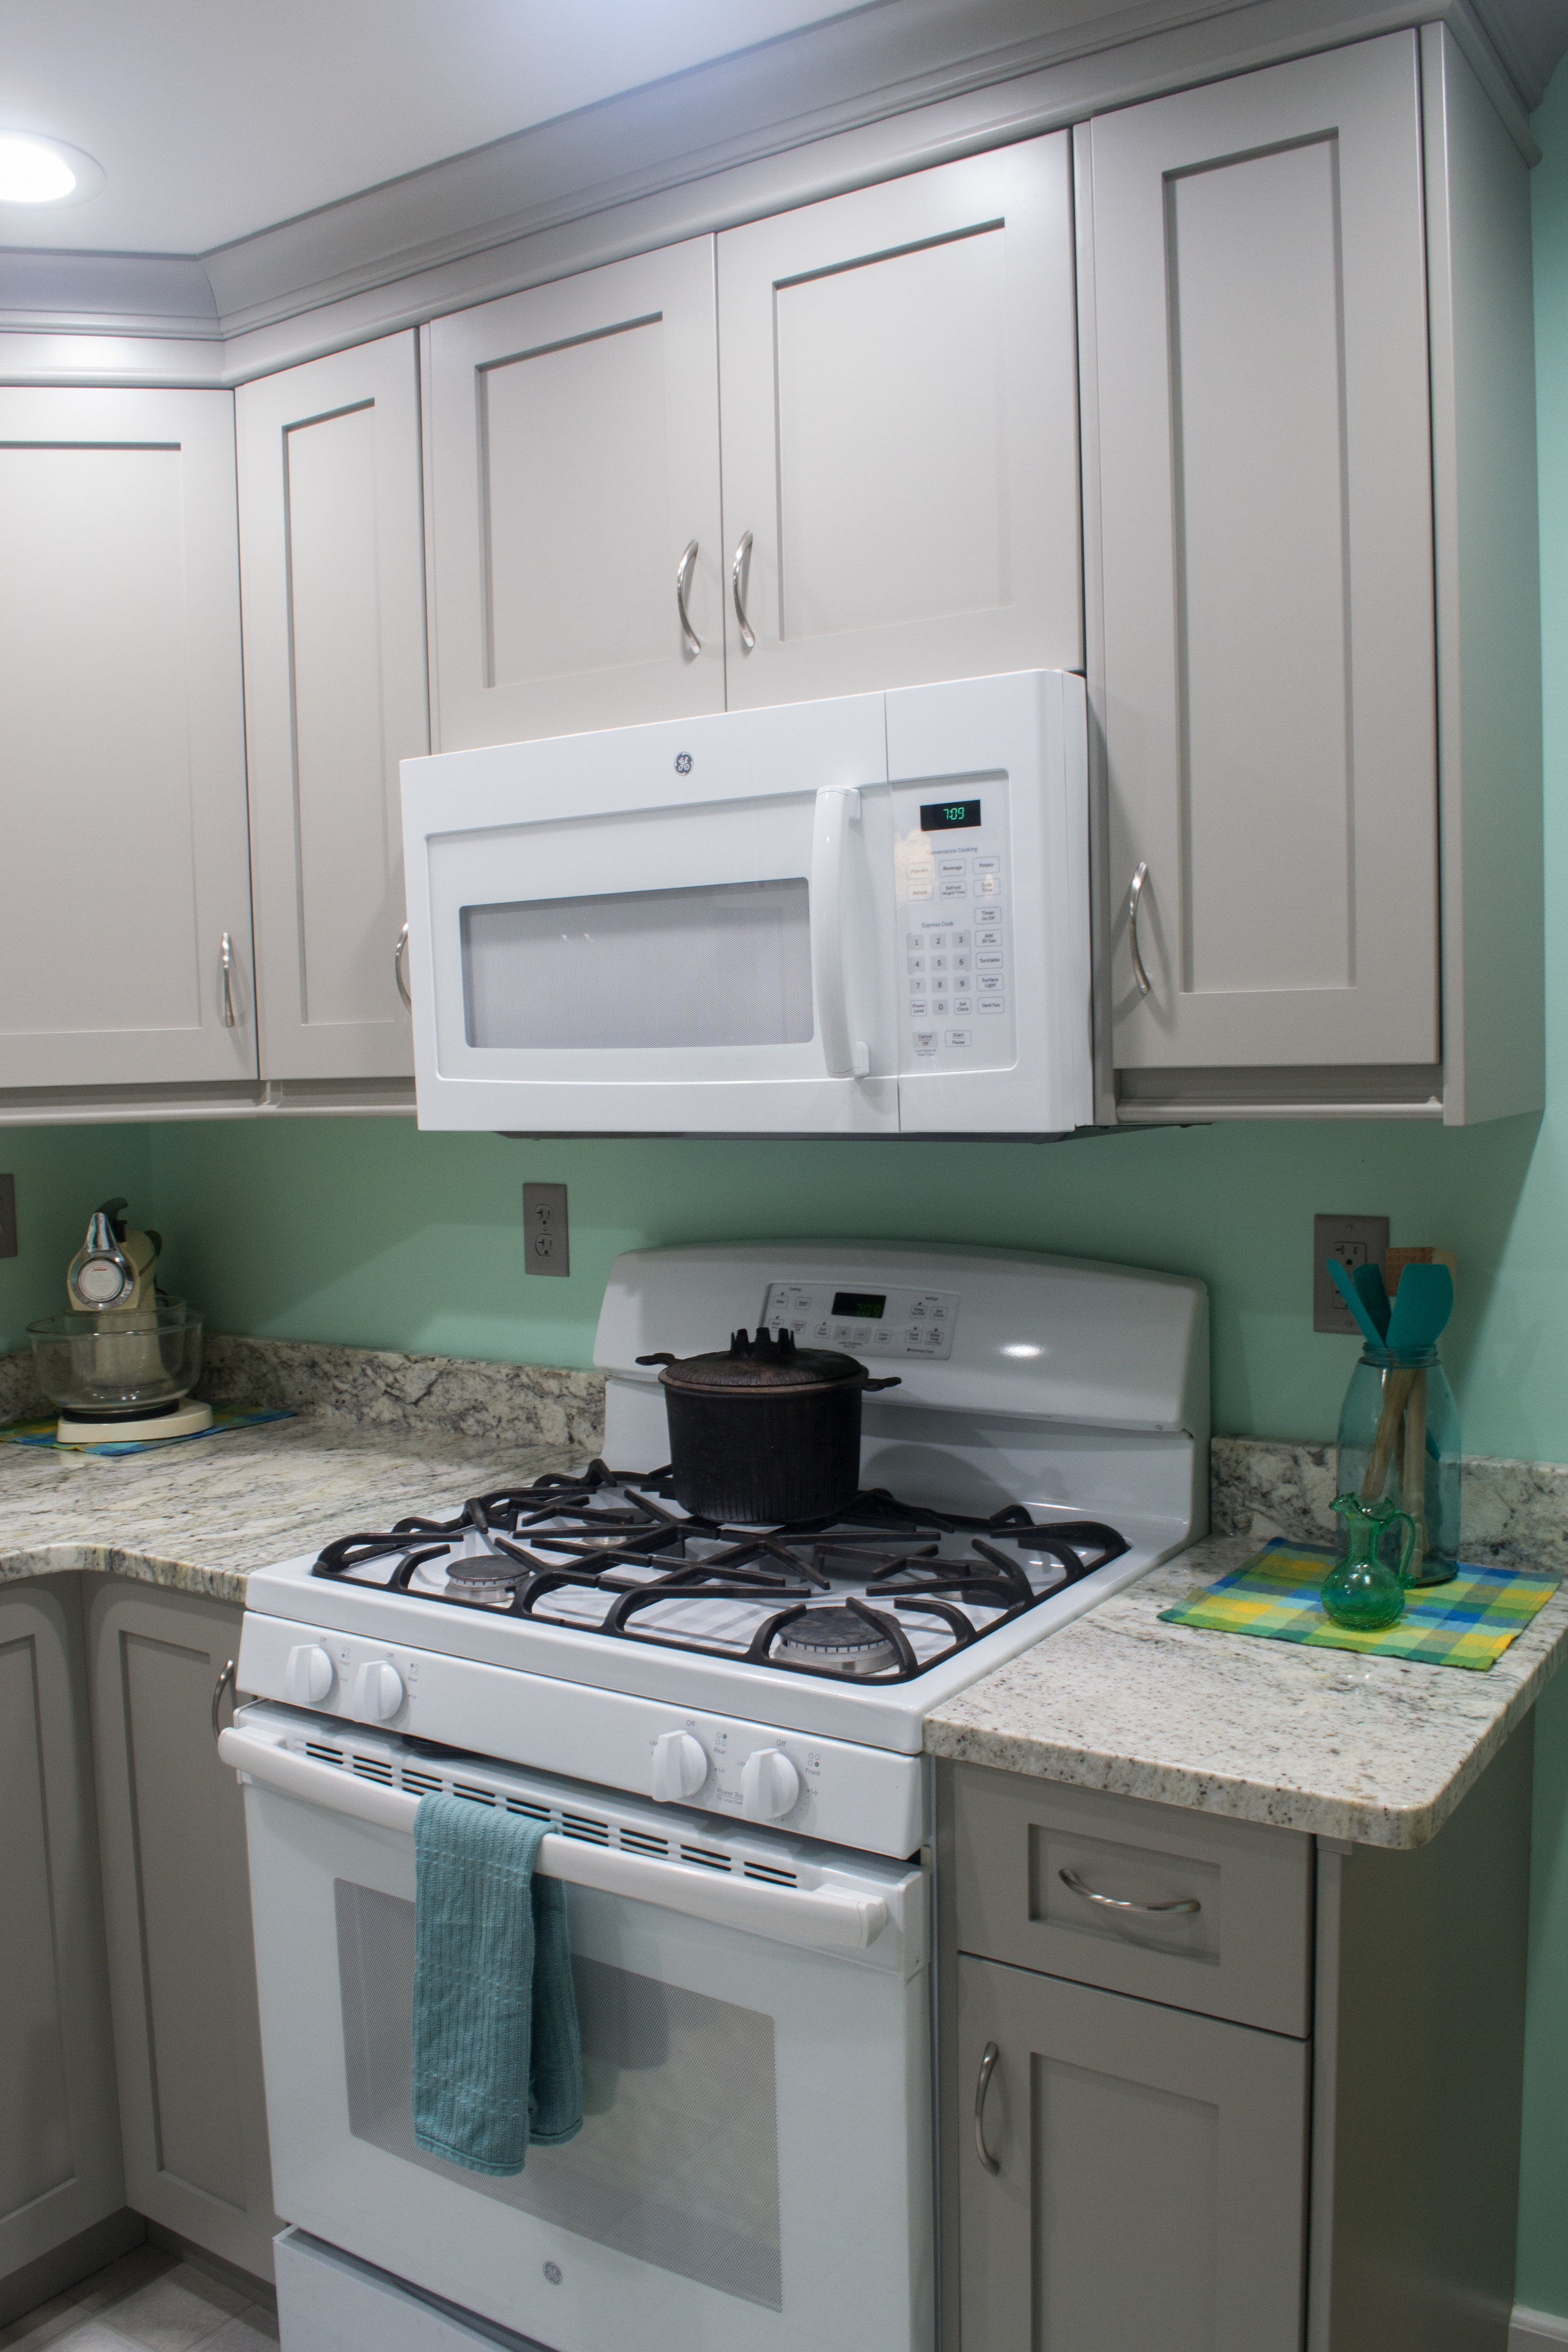 Mitchell grey shaker style kitchen painted cabinets-6.jpg